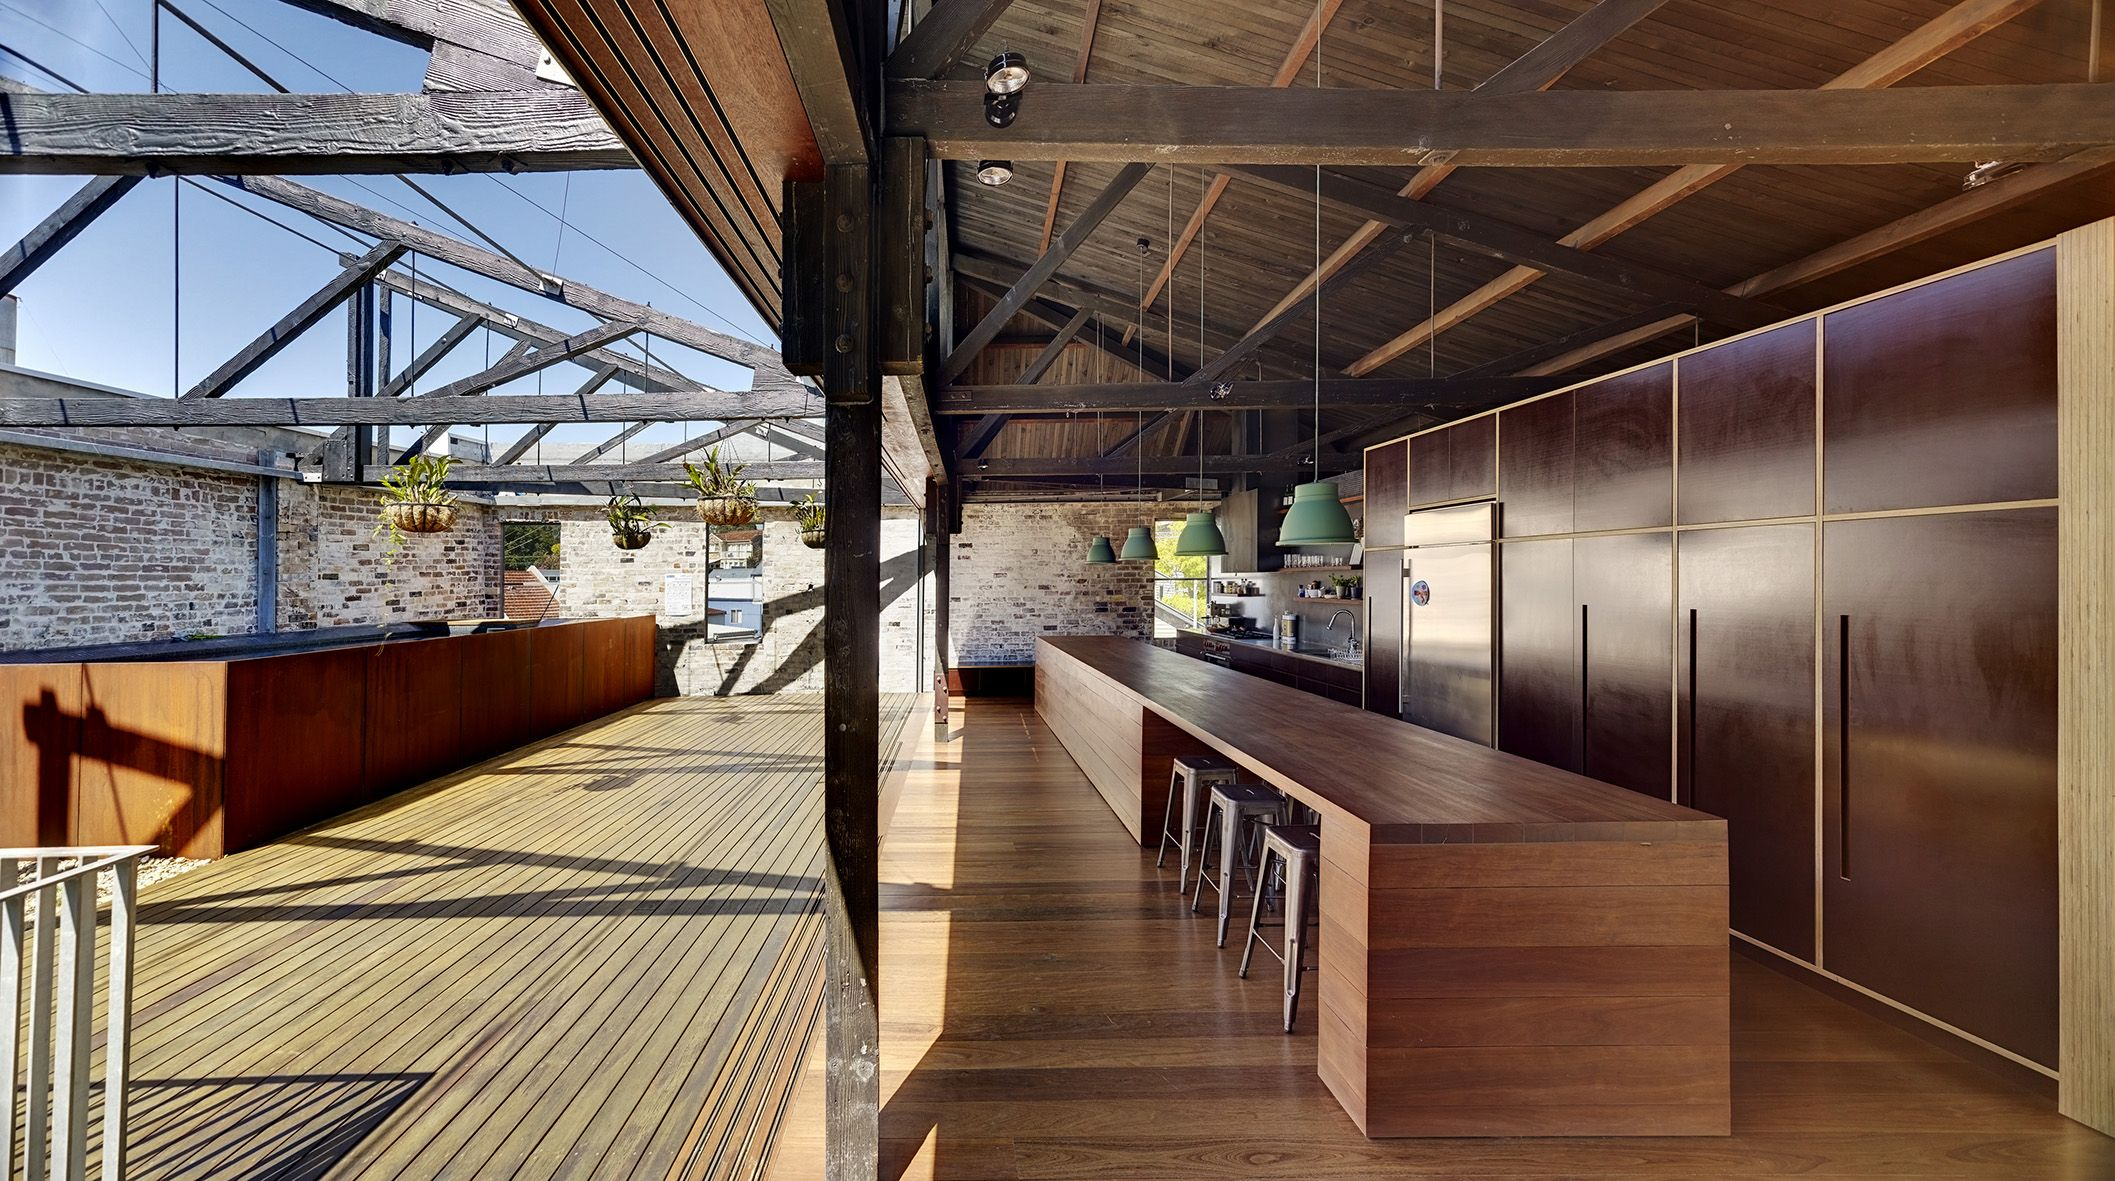 Think A Stunning Warehouse Conversion In Sydney, Two Holistically Sustainable